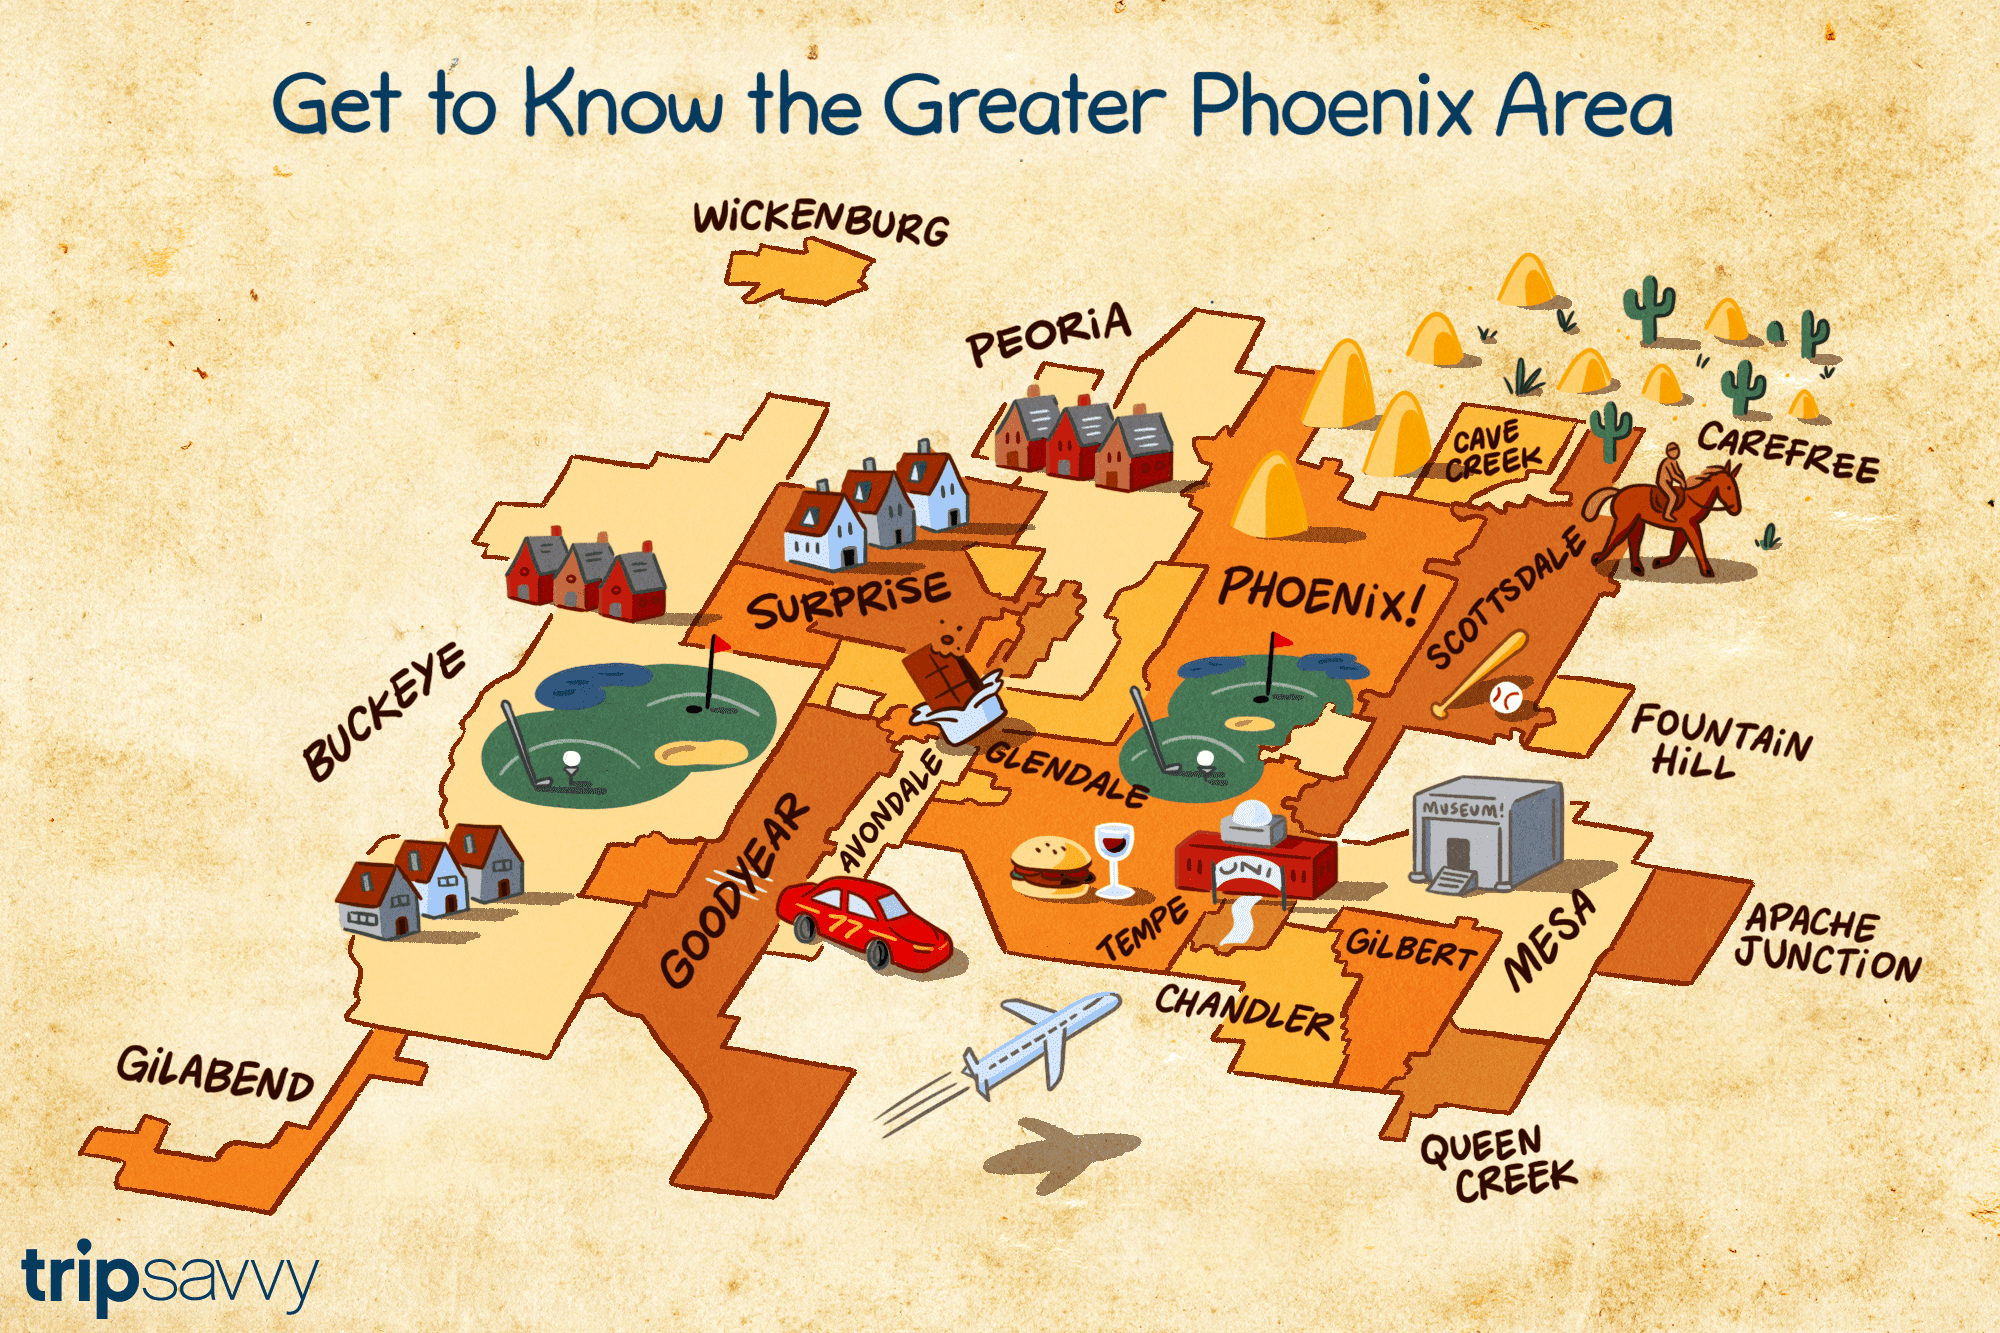 Map of Phoenix and Nearby Cities in Maricopa County